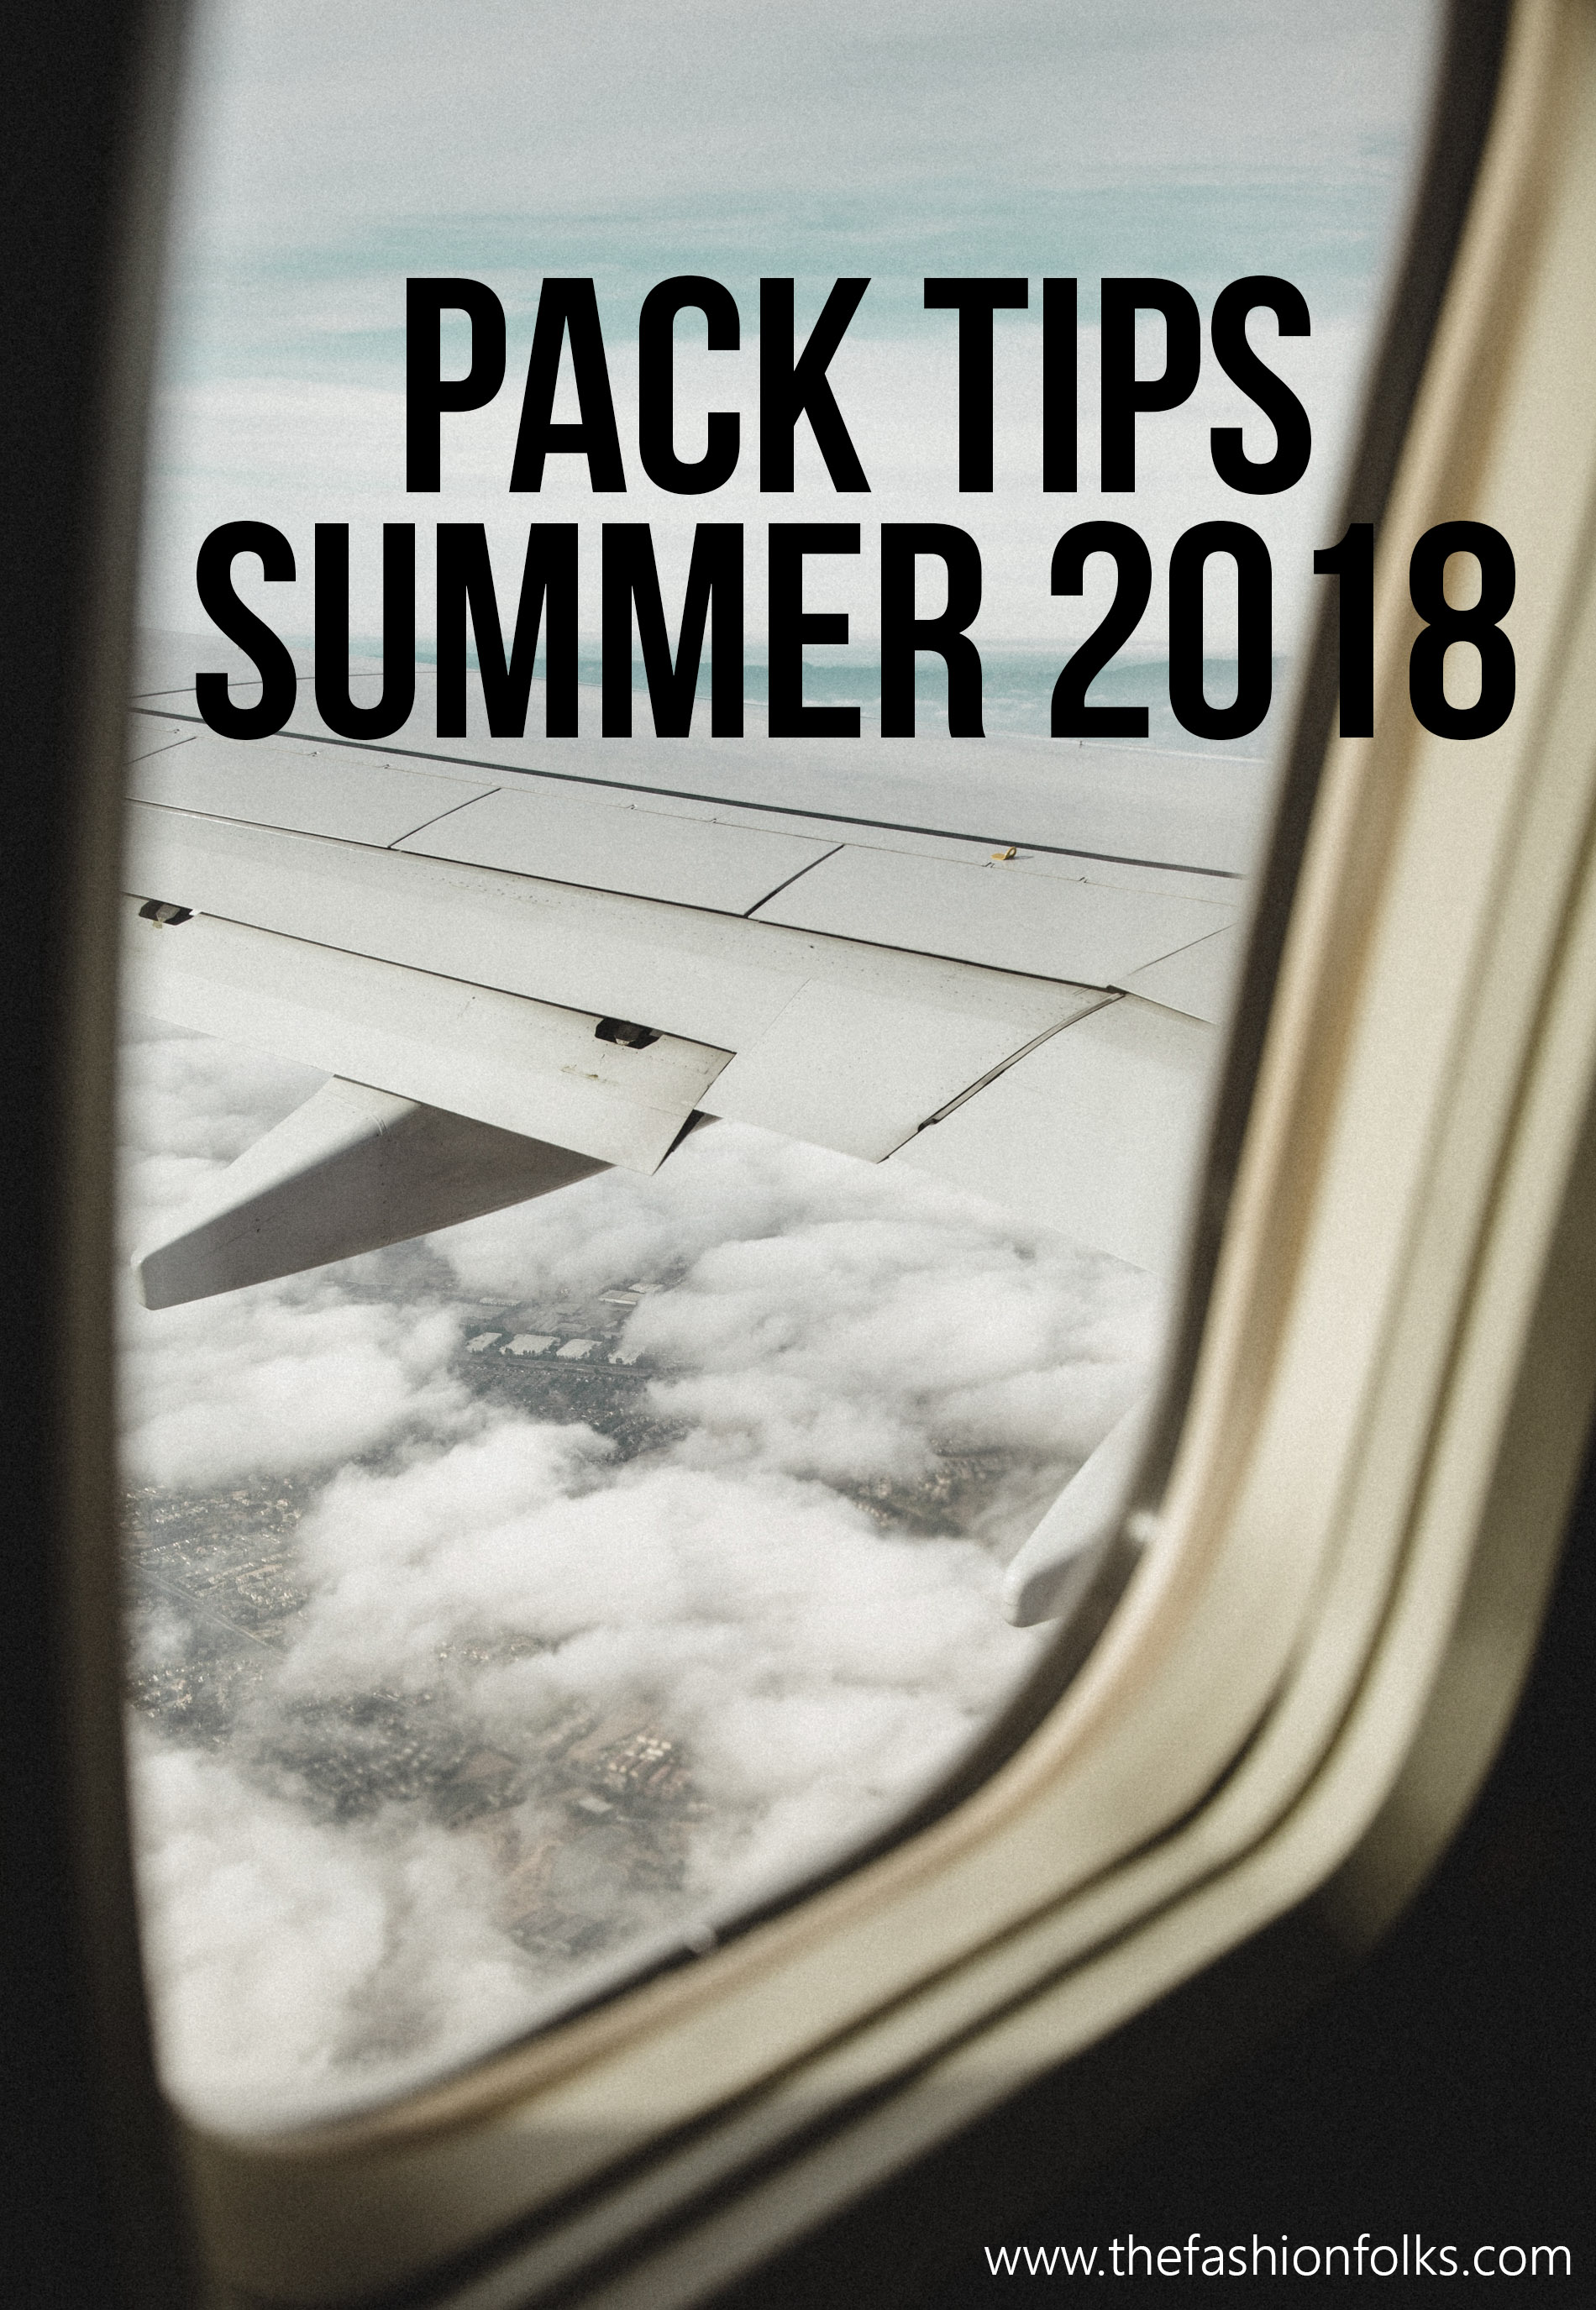 Pack Tips Summer 2018